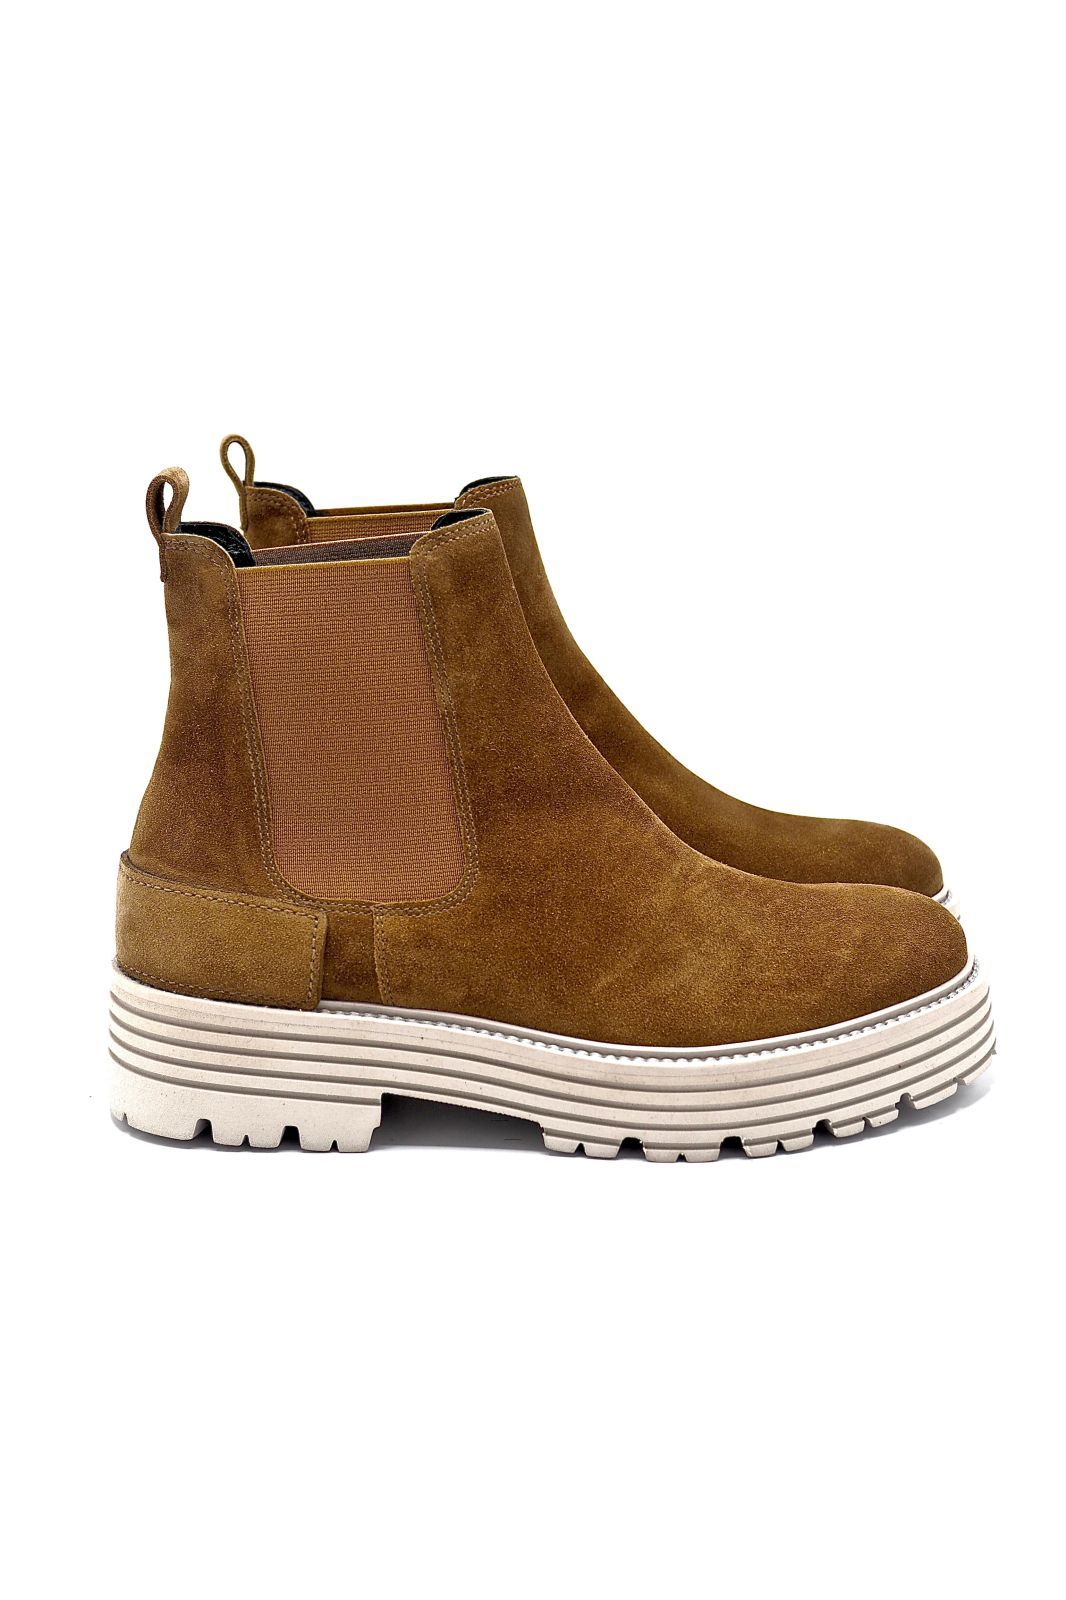 Kennel & Schmenger boots Naturel femmes (K&S-Boots élastiques - 41-34310 boots daim camel) - Marine | Much more than shoes